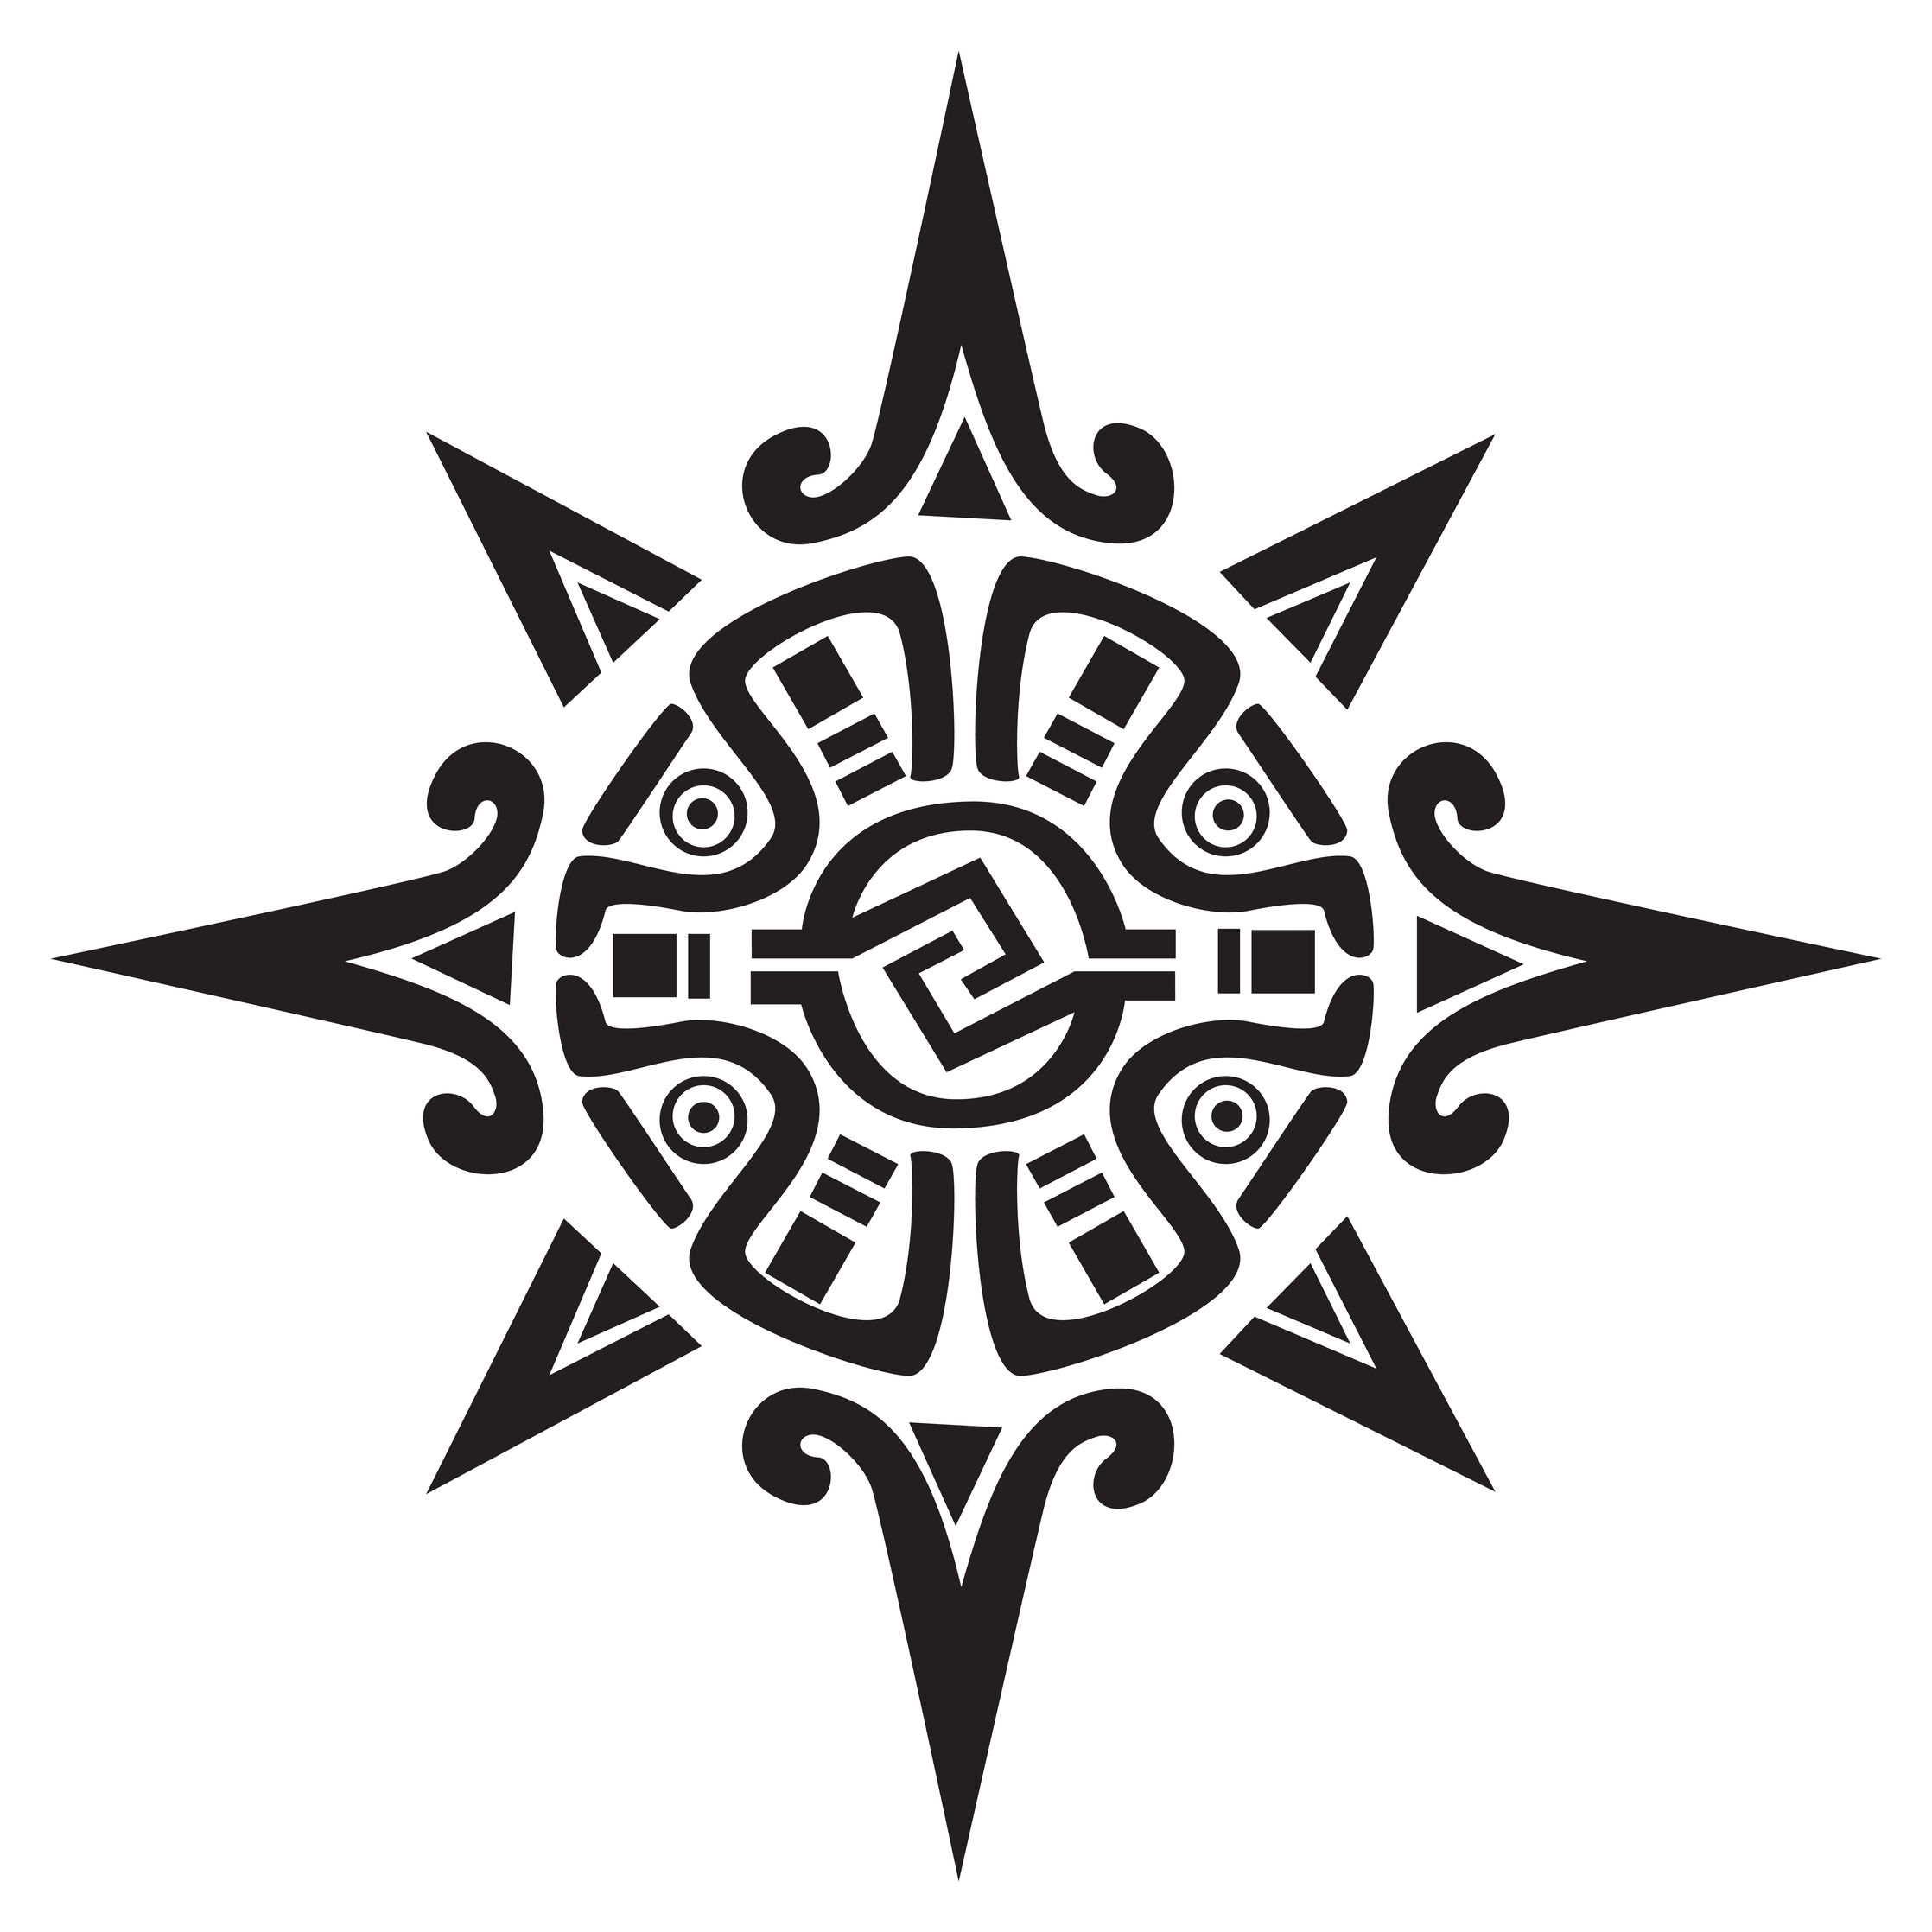 Tribal Tattoo Symbol: 12 Tribal Sun Tattoos – Meanings And Symbols